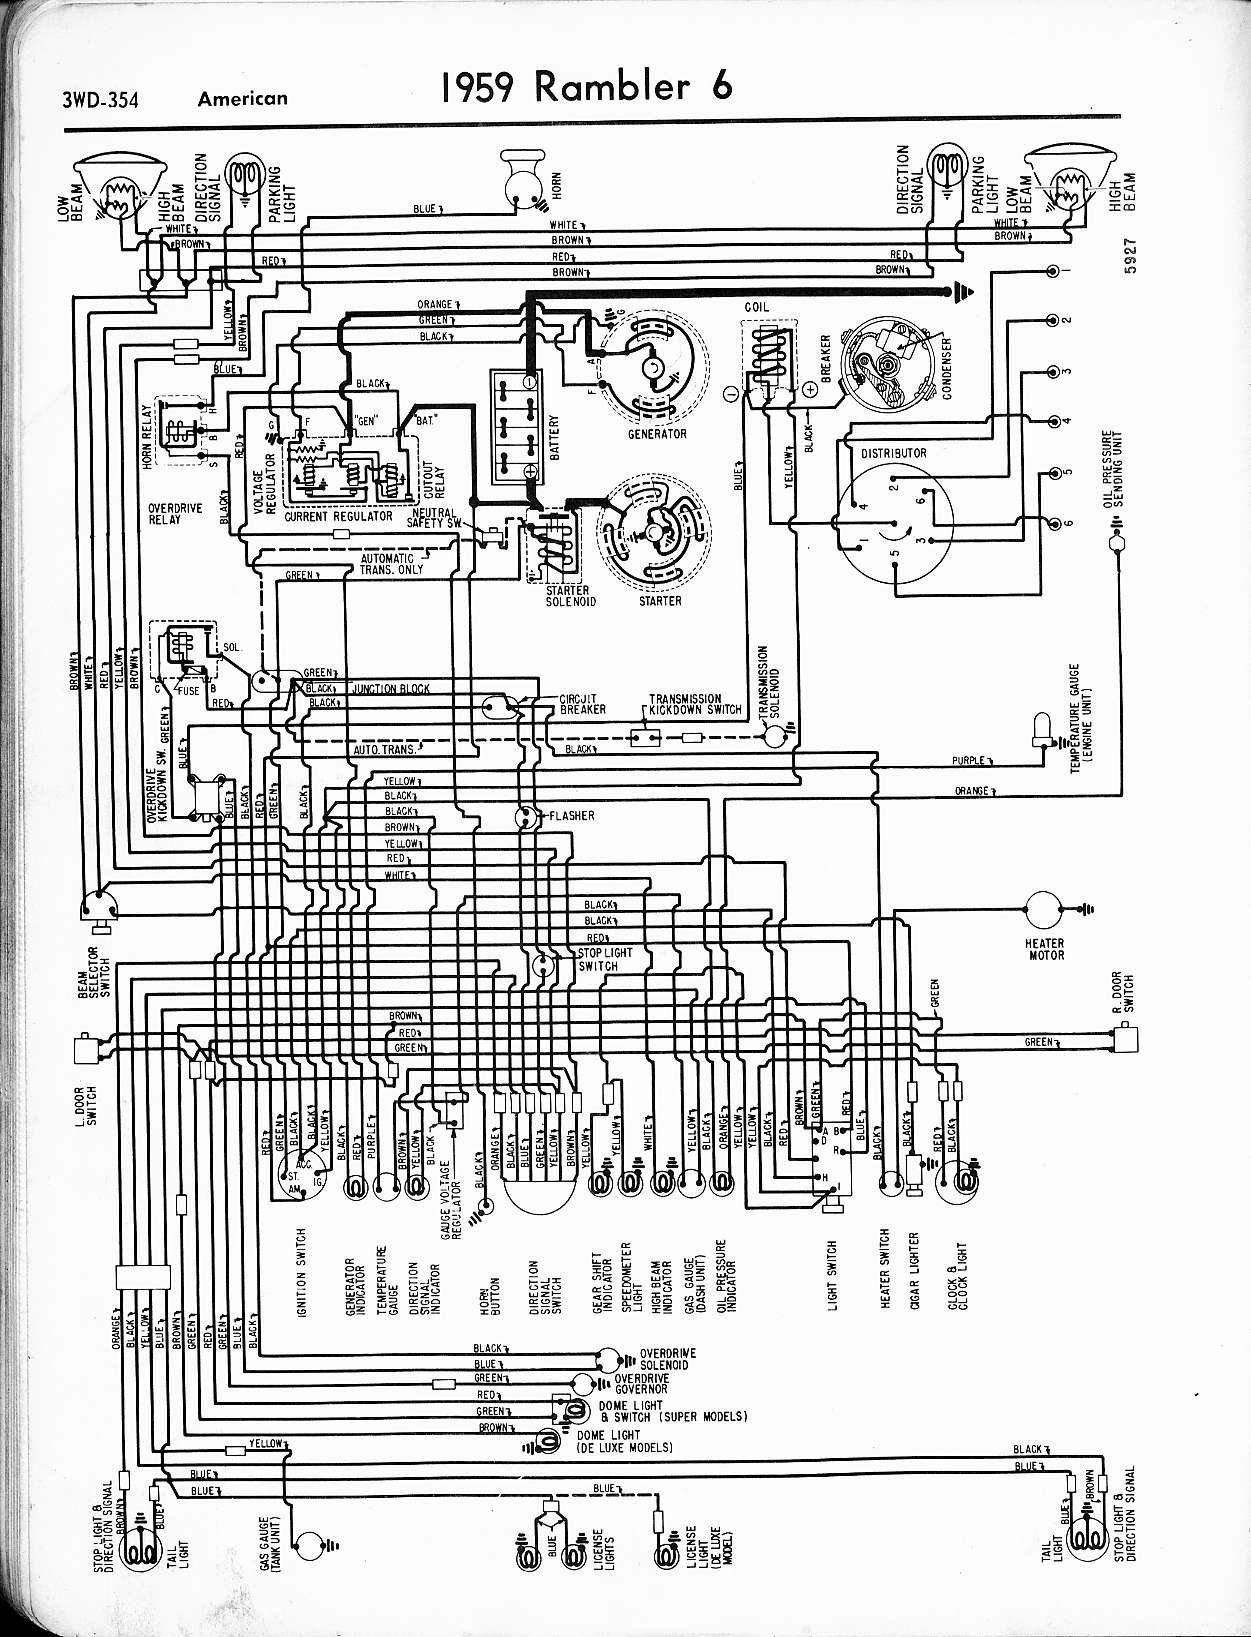 Rambler Wiring Diagrams The Old Car Manual Project Residential Wiring  Diagrams Amc Wiring Diagram